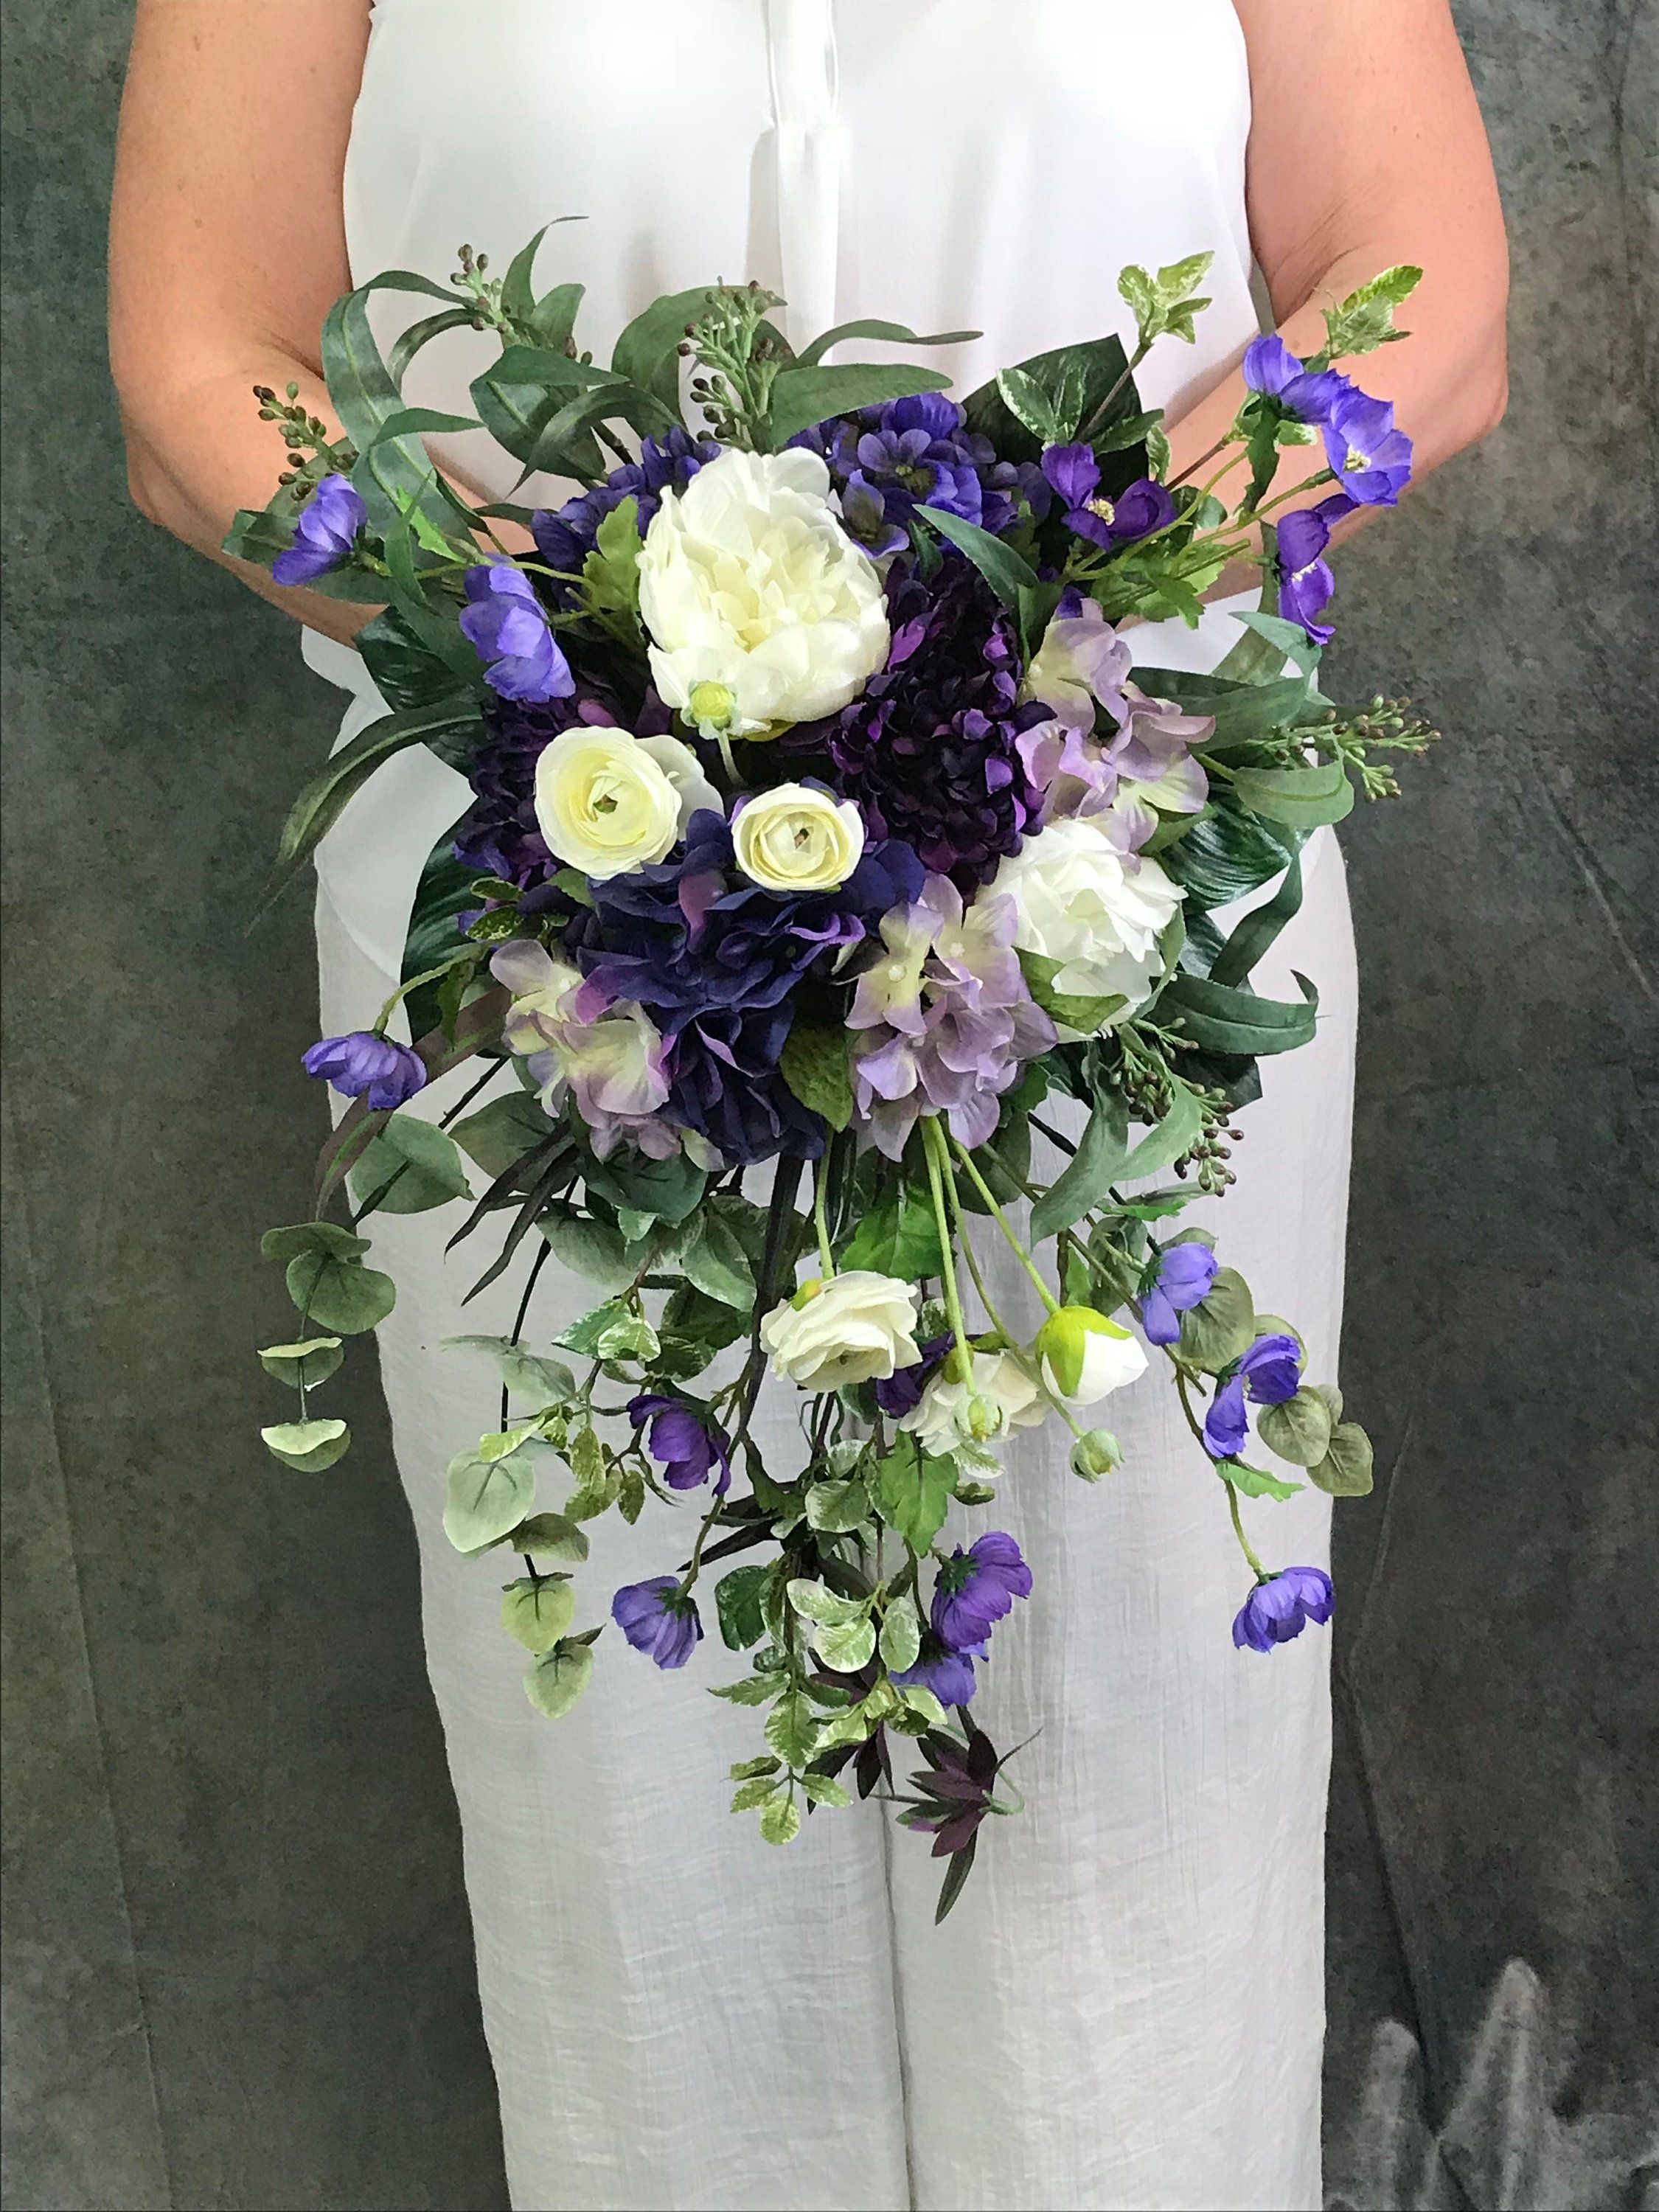 Regency & Wisteria Purple Bridal Bouquet-Purple Cascading Silk Bridal Bouquet-Hydrangeas-Peonies-Ranunculus-Cosmos-Eucalyptus-Purple Wedding #bridalbouquetpurple